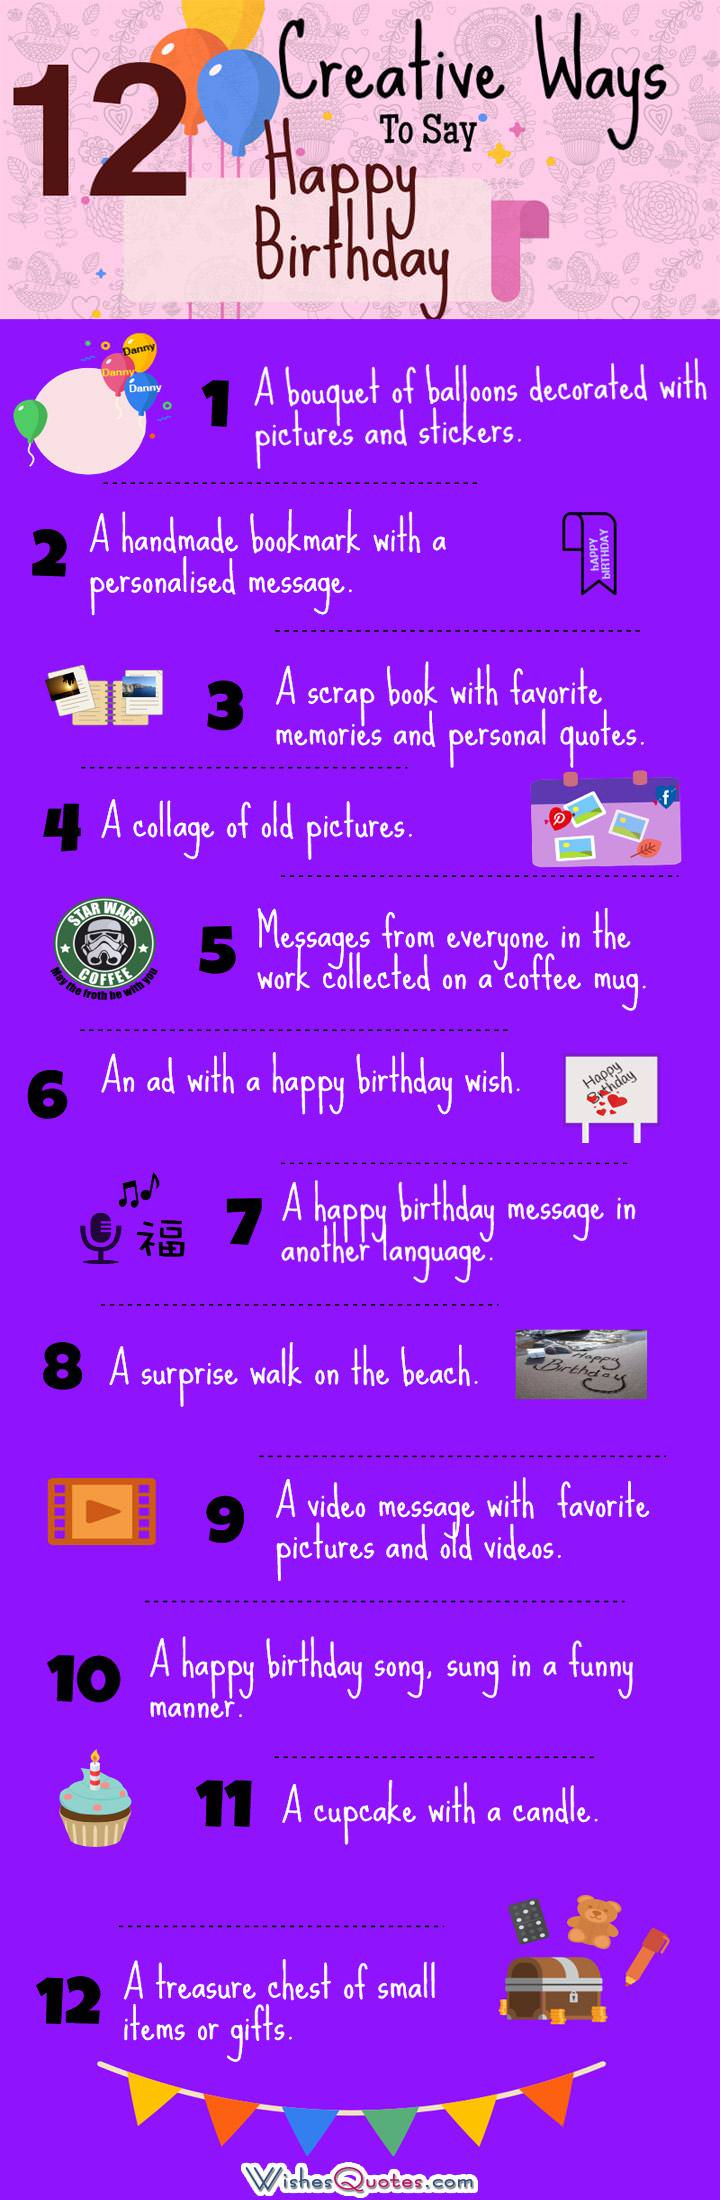 12 Creative Ways to Say Happy Birthday